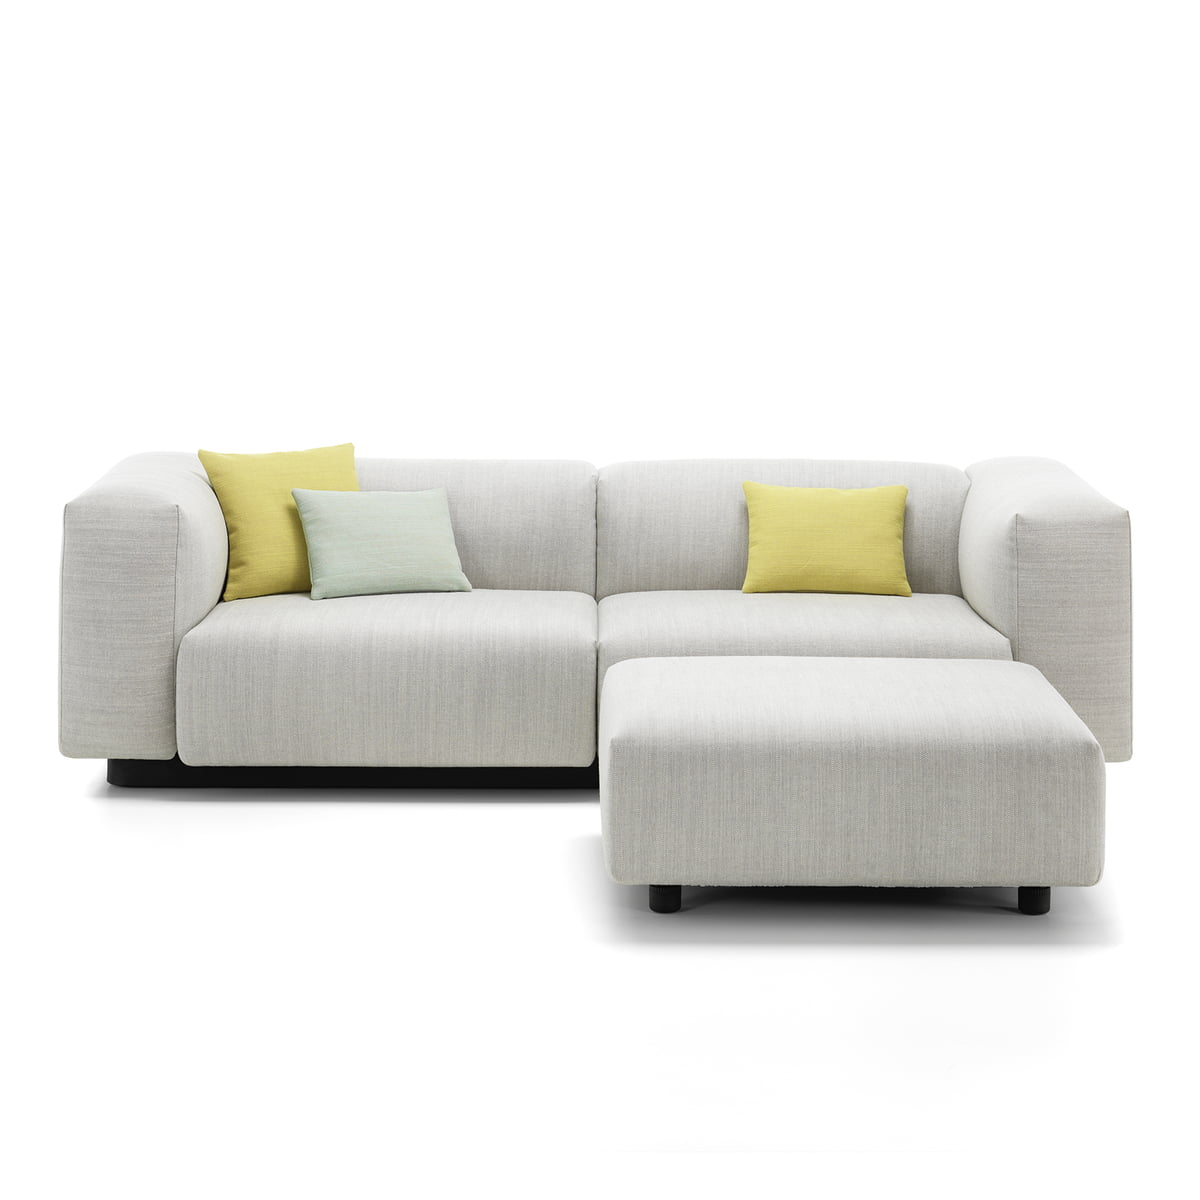 Soft Modular 2 Seater-Sofa from Vitra in the Connox Shop